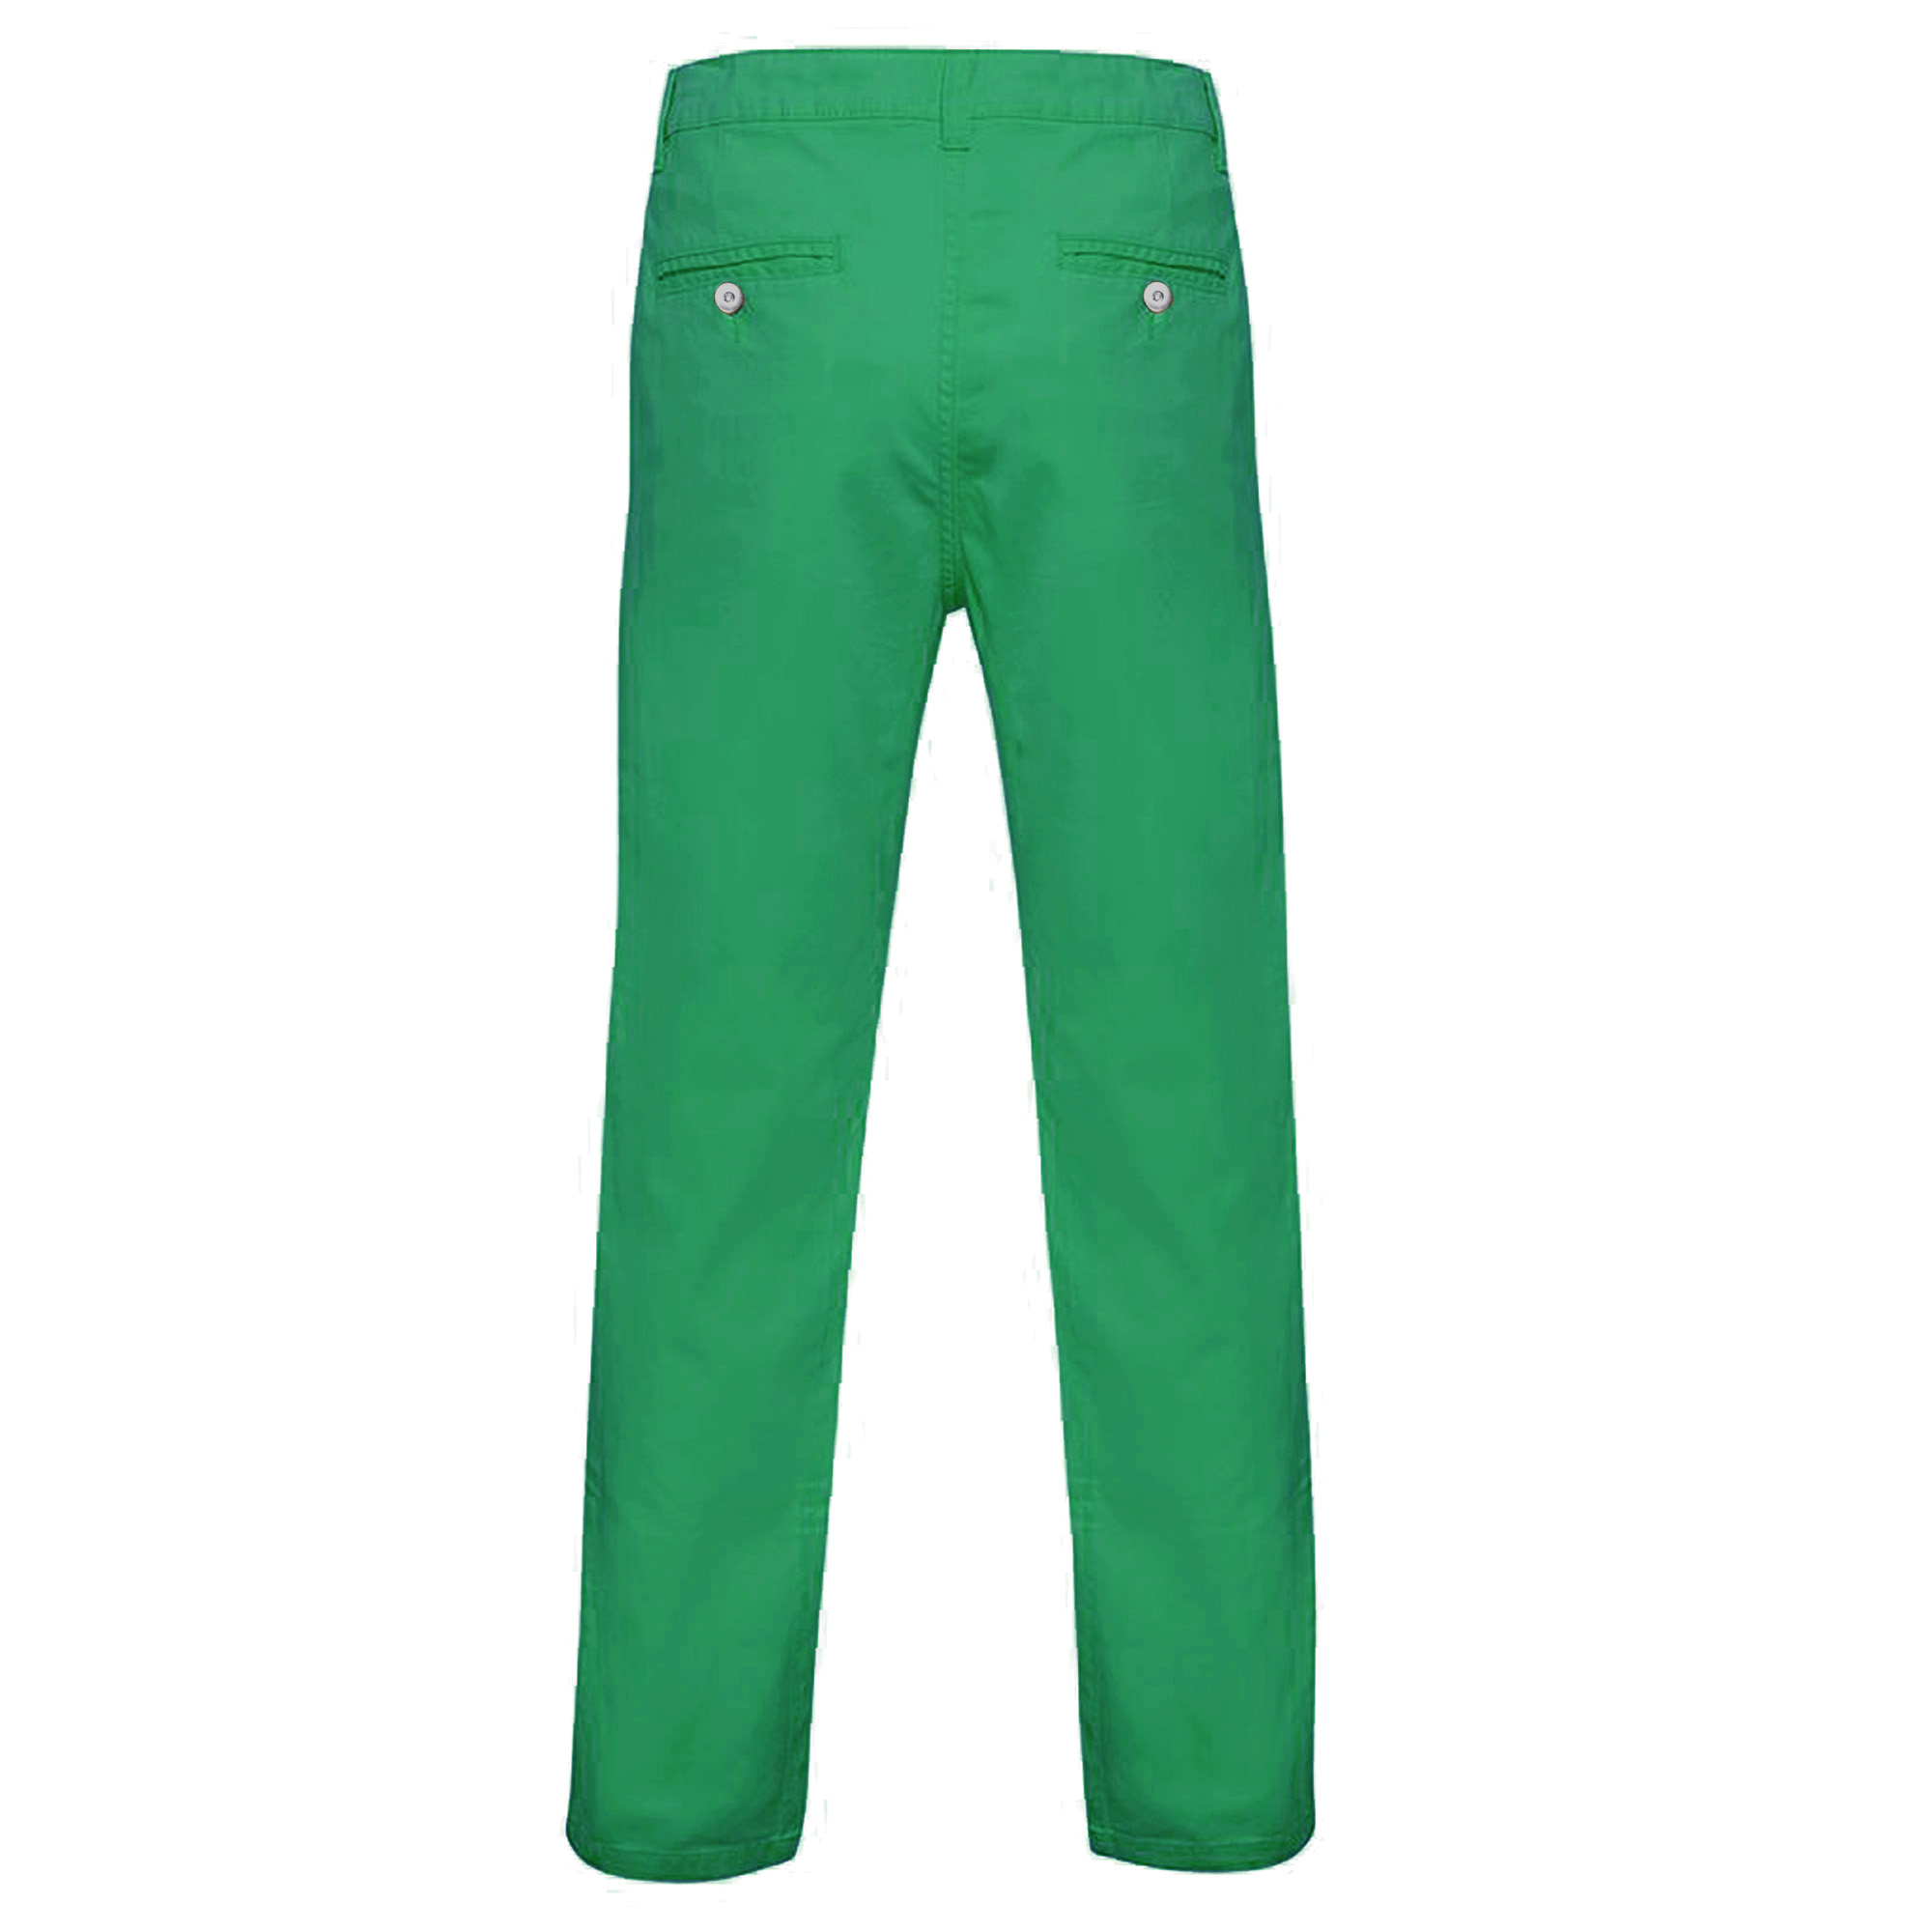 Asquith & Fox Mens Classic Casual Chinos/Trousers (4XLU) (Lemon Zest)